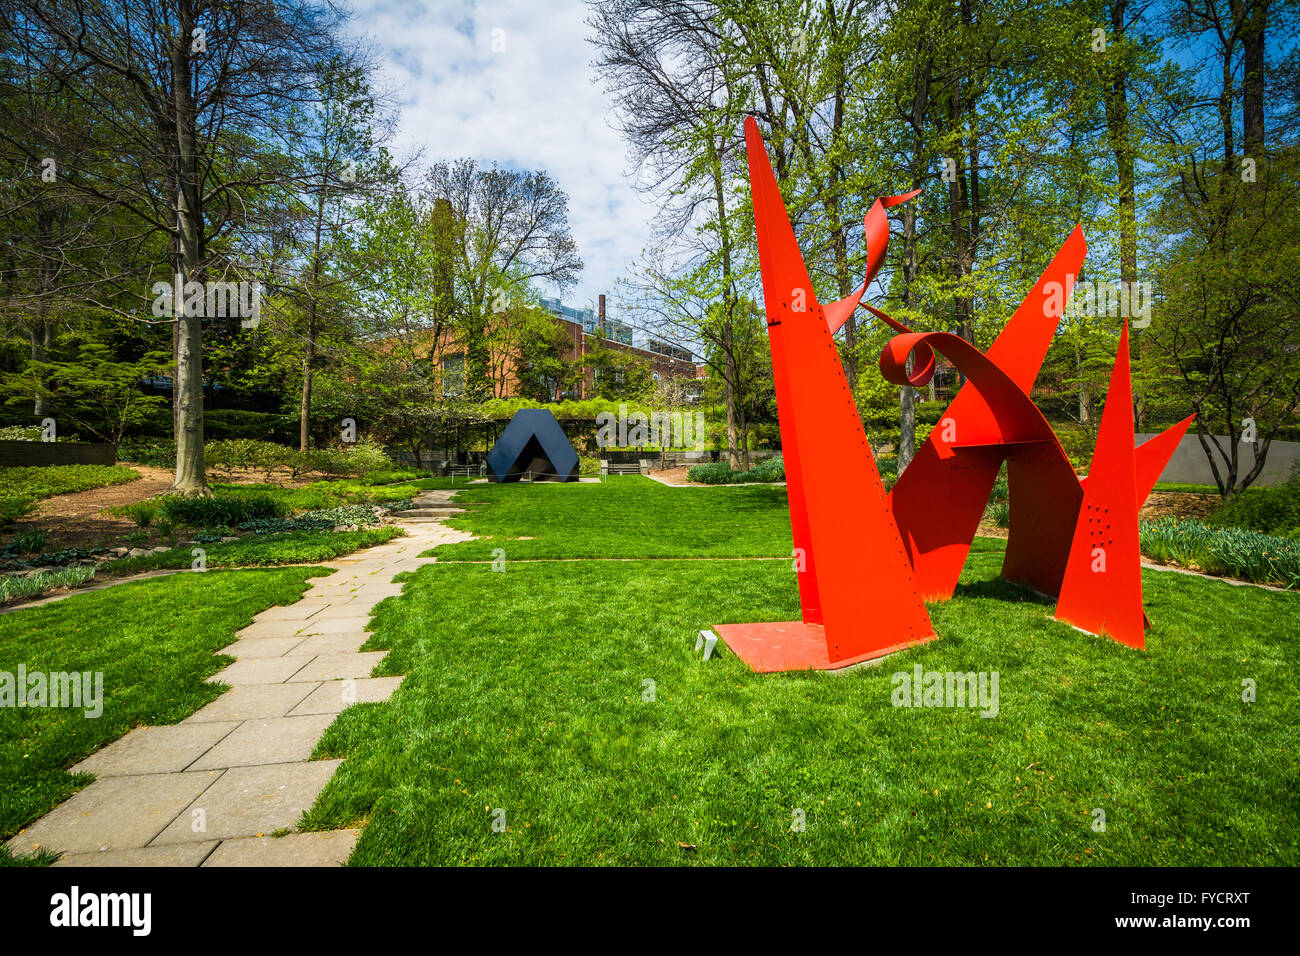 The Sculpture Garden at the Baltimore Museum of Art, in Baltimore, Maryland. - Stock Image